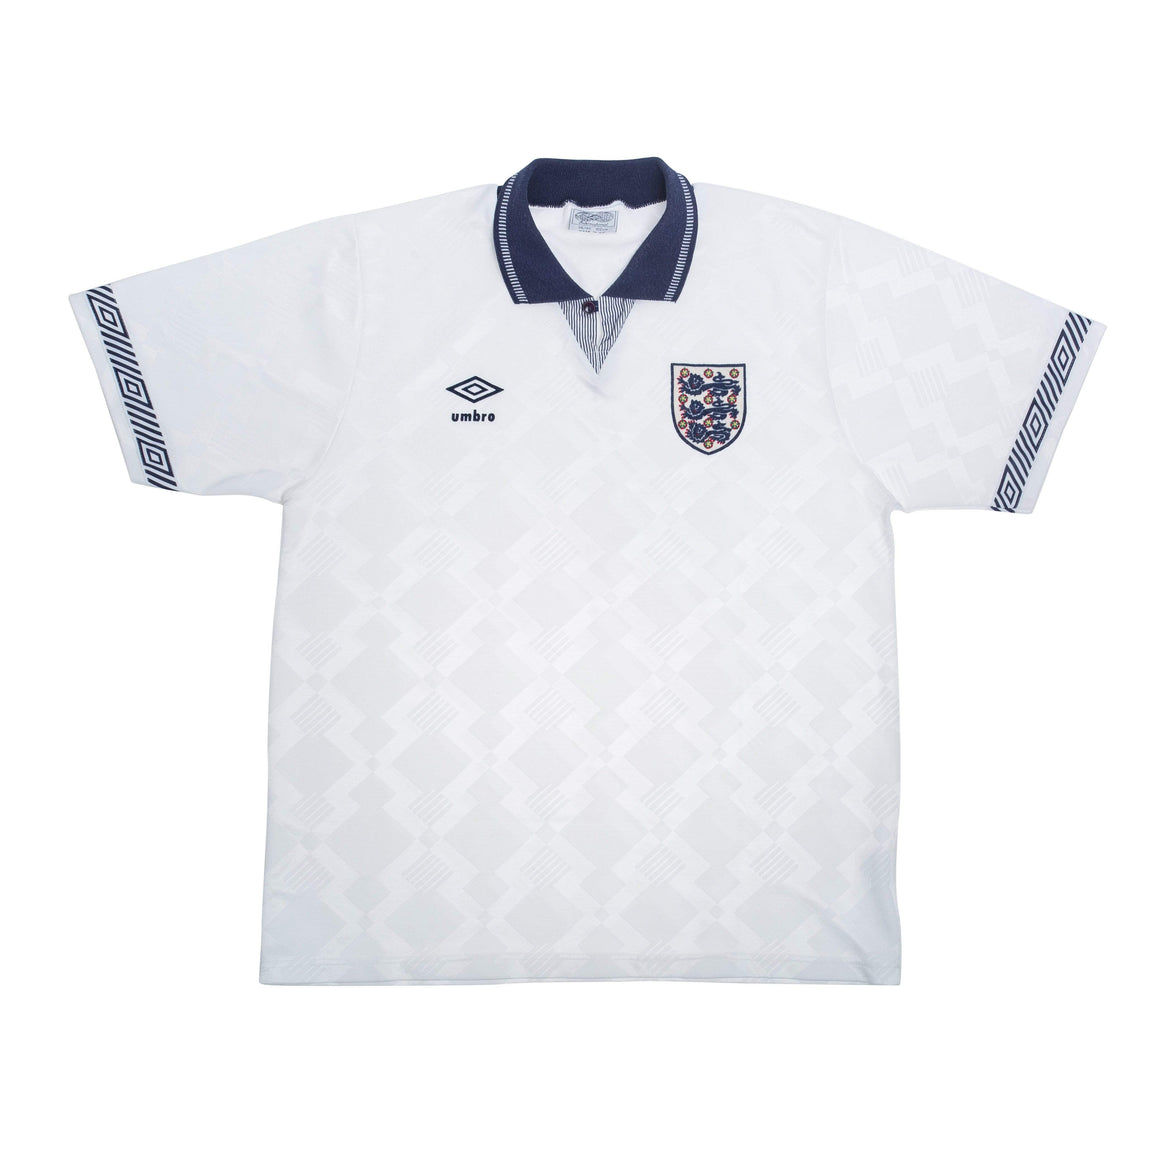 Football Shirt Collective 1990 England Home Football Shirt M Excellent